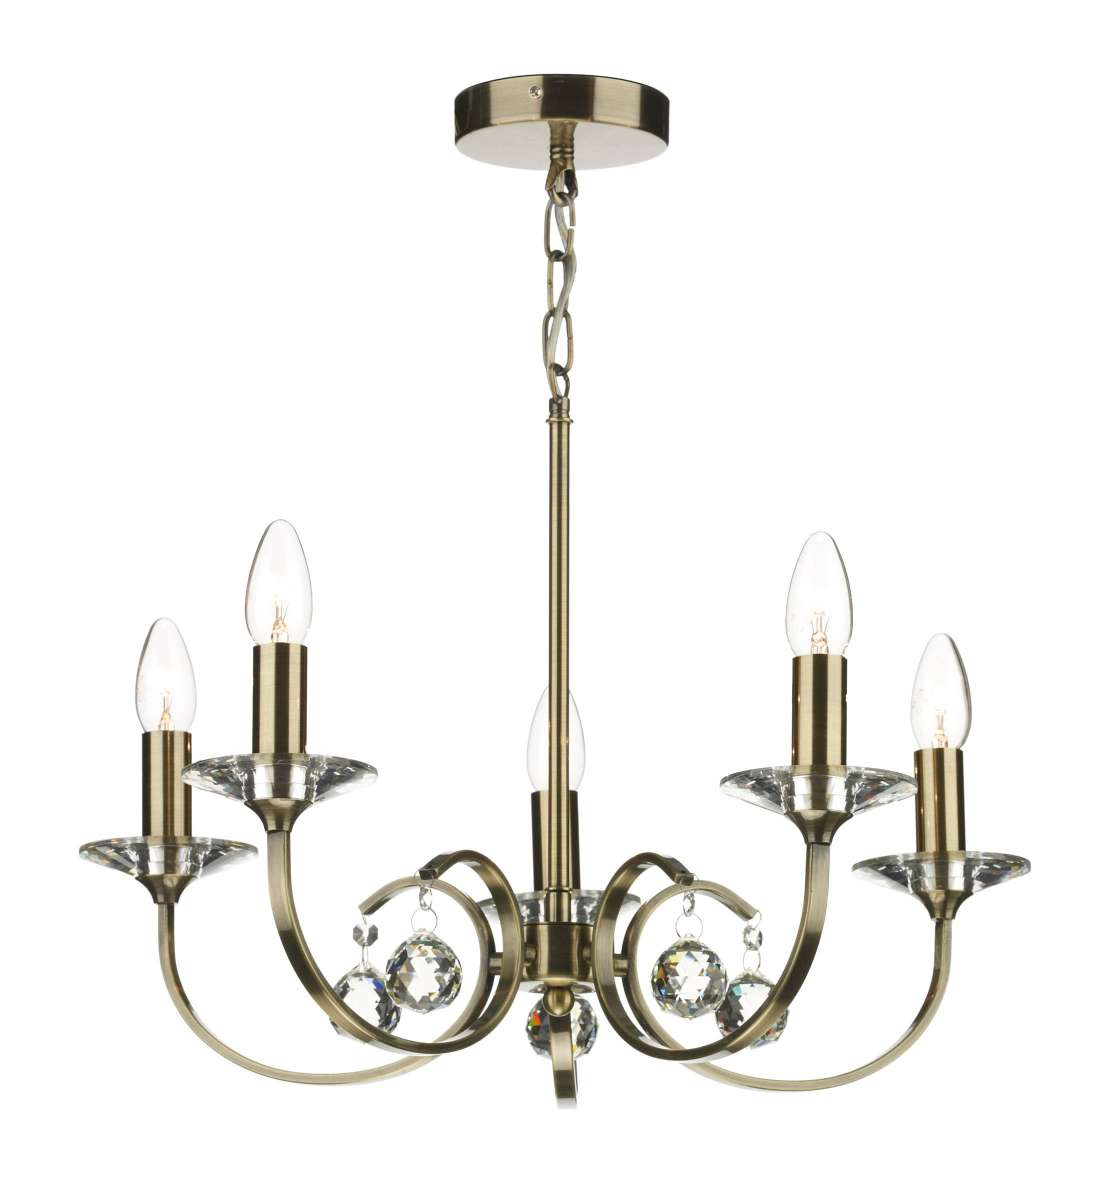 Dar Lighting All0575 Allegra 5 Light Antique Brass Fitting Online Lighting Shop